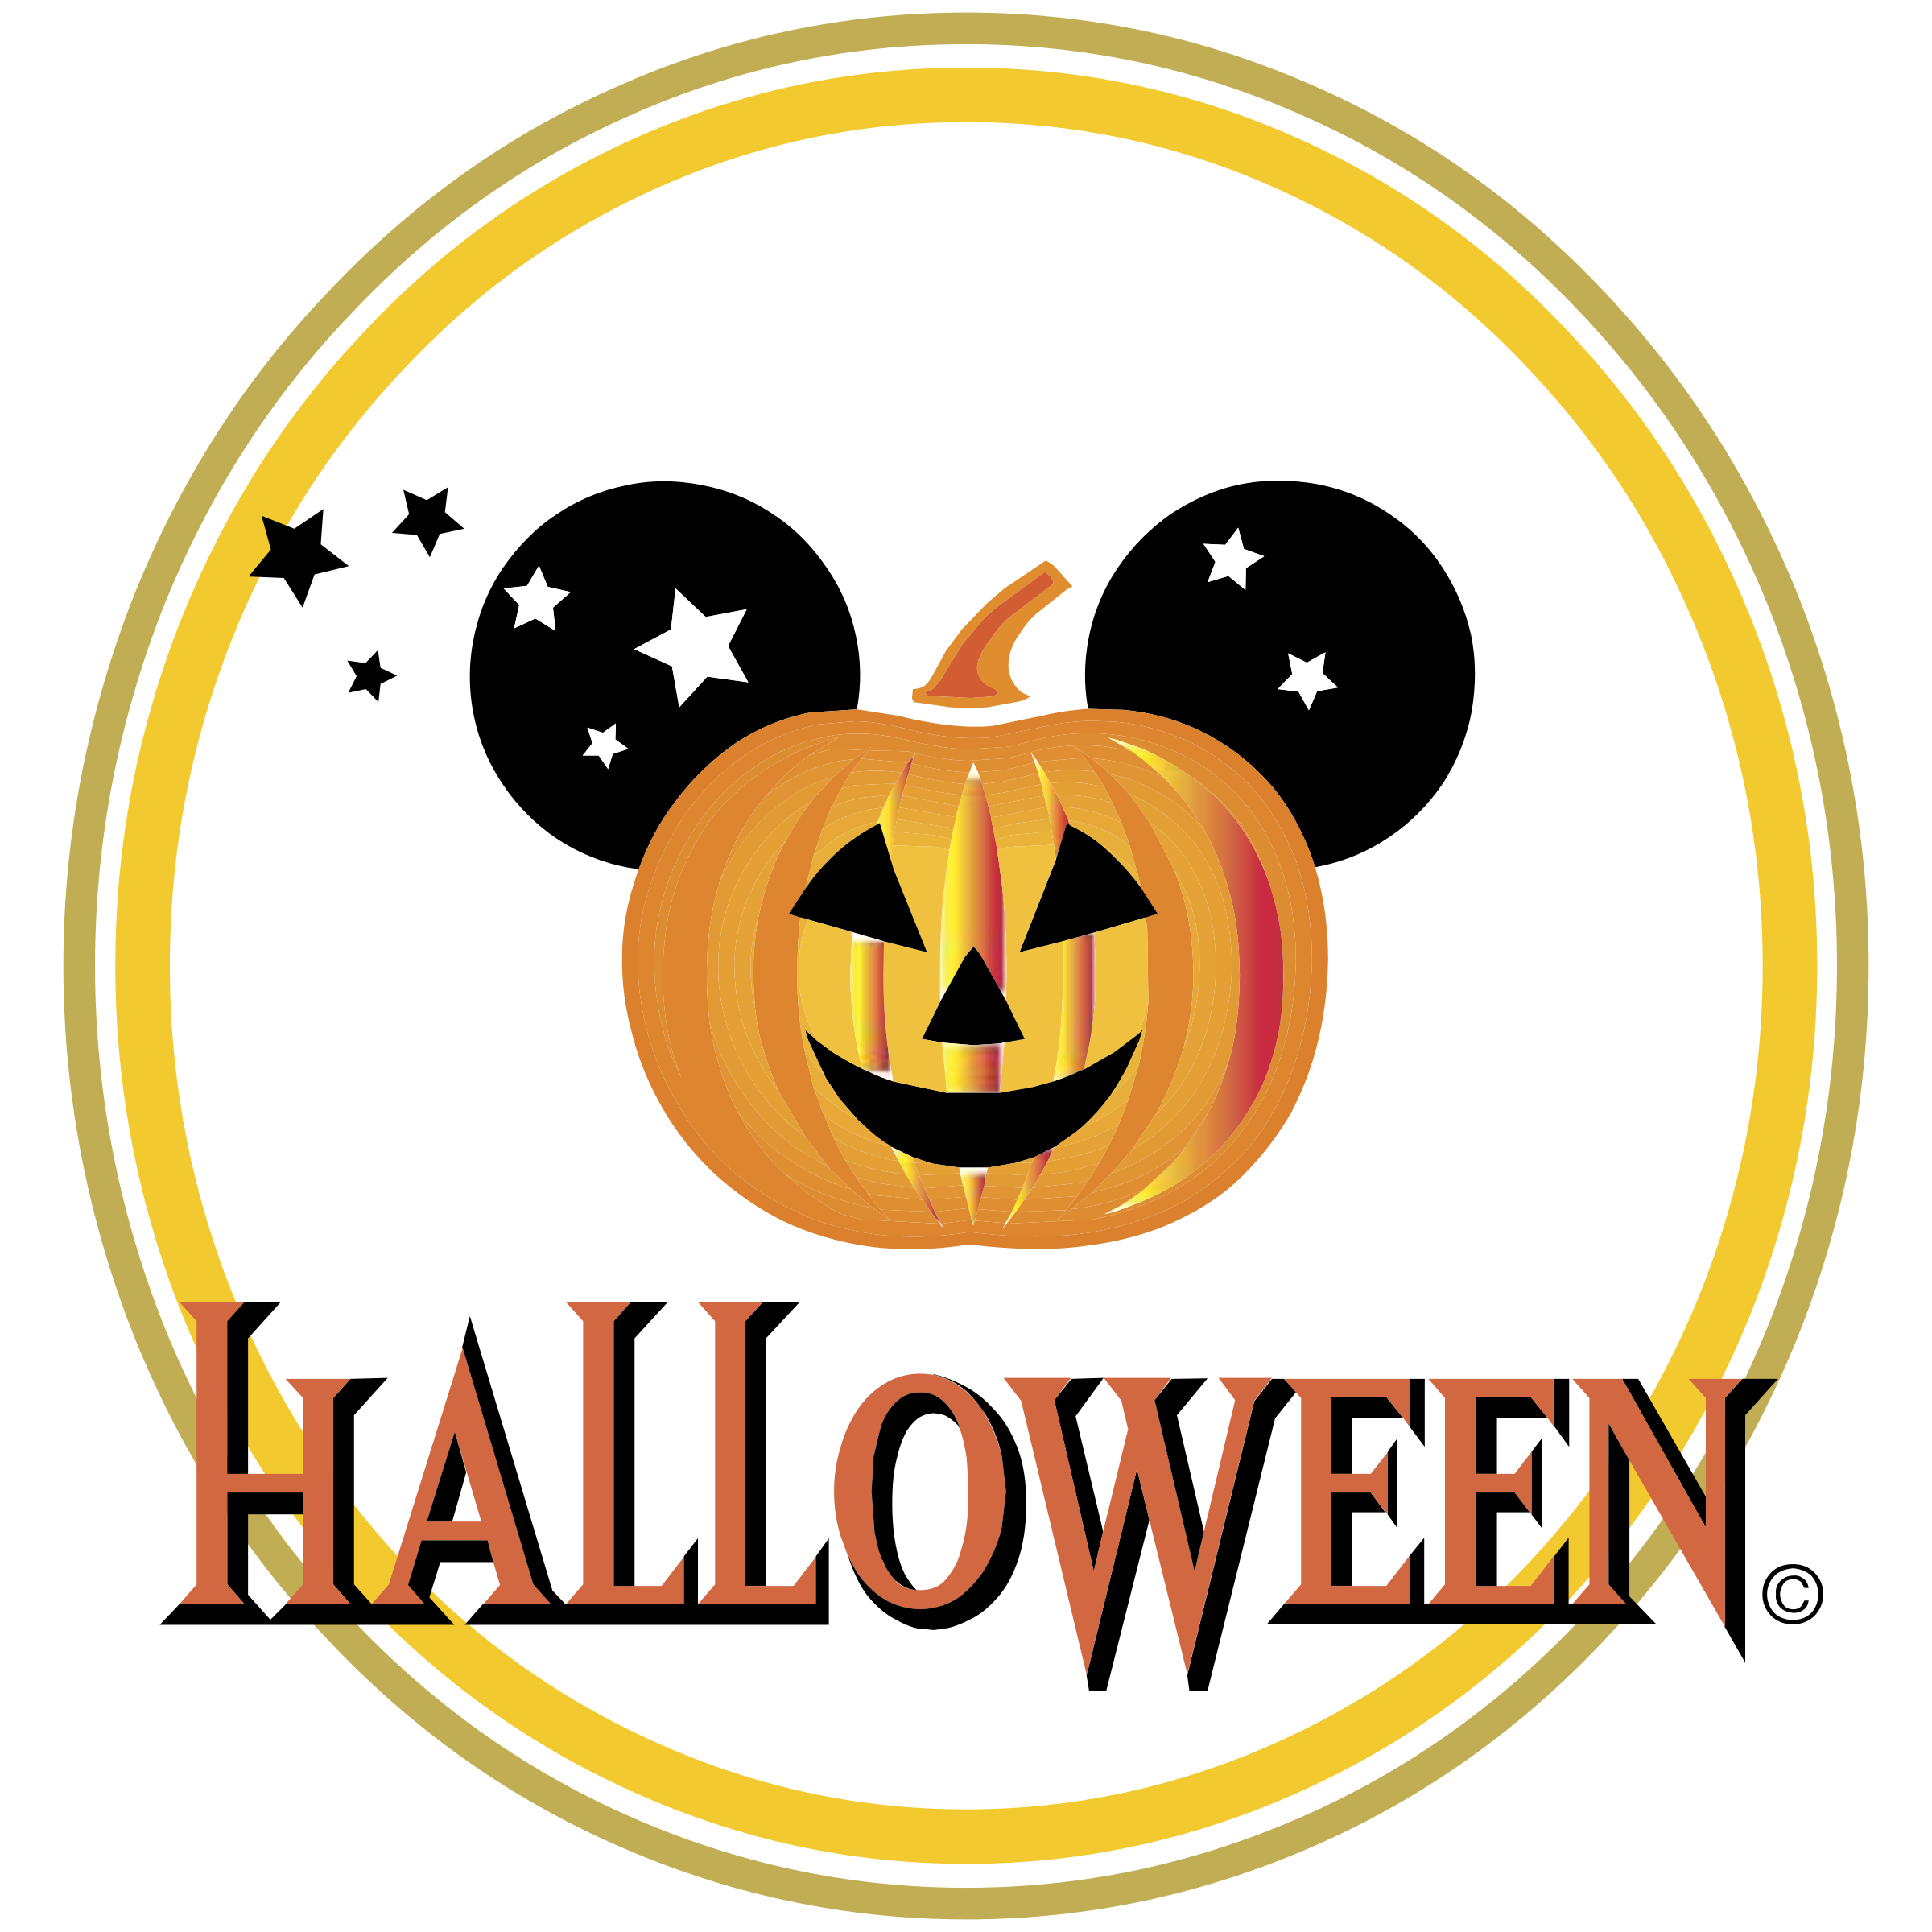 svg freebies halloween